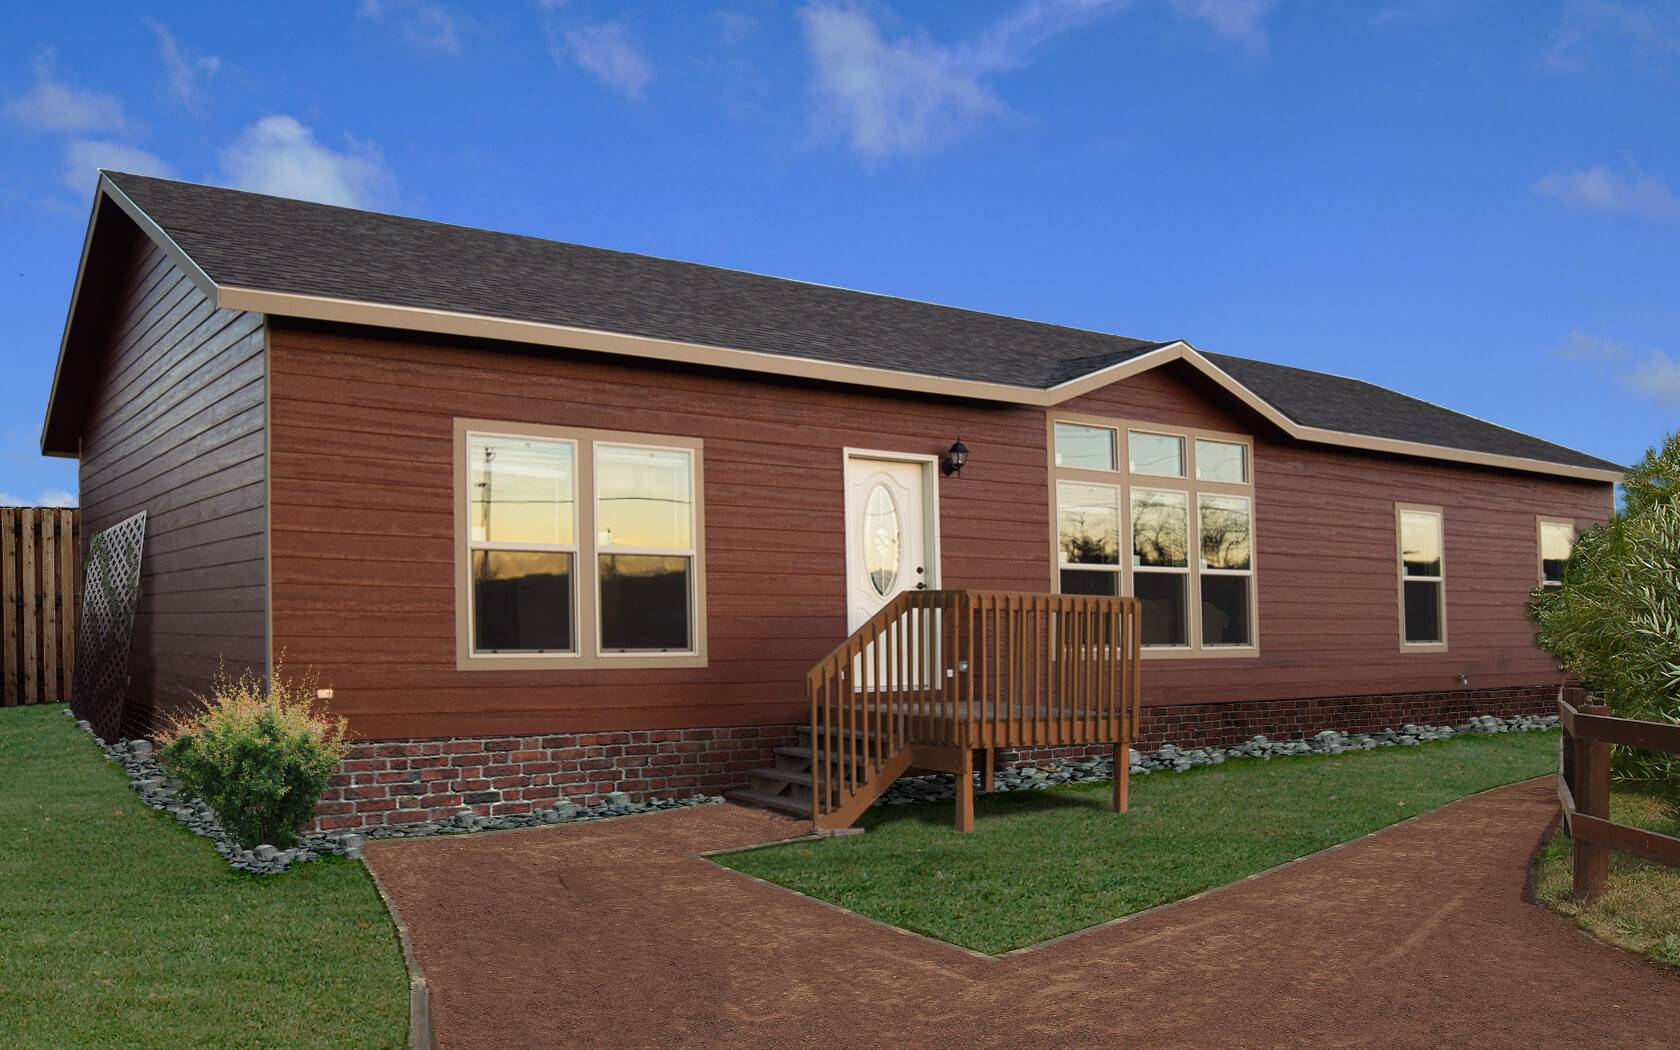 Iseman Homes Williston Manufactured Home Dealer